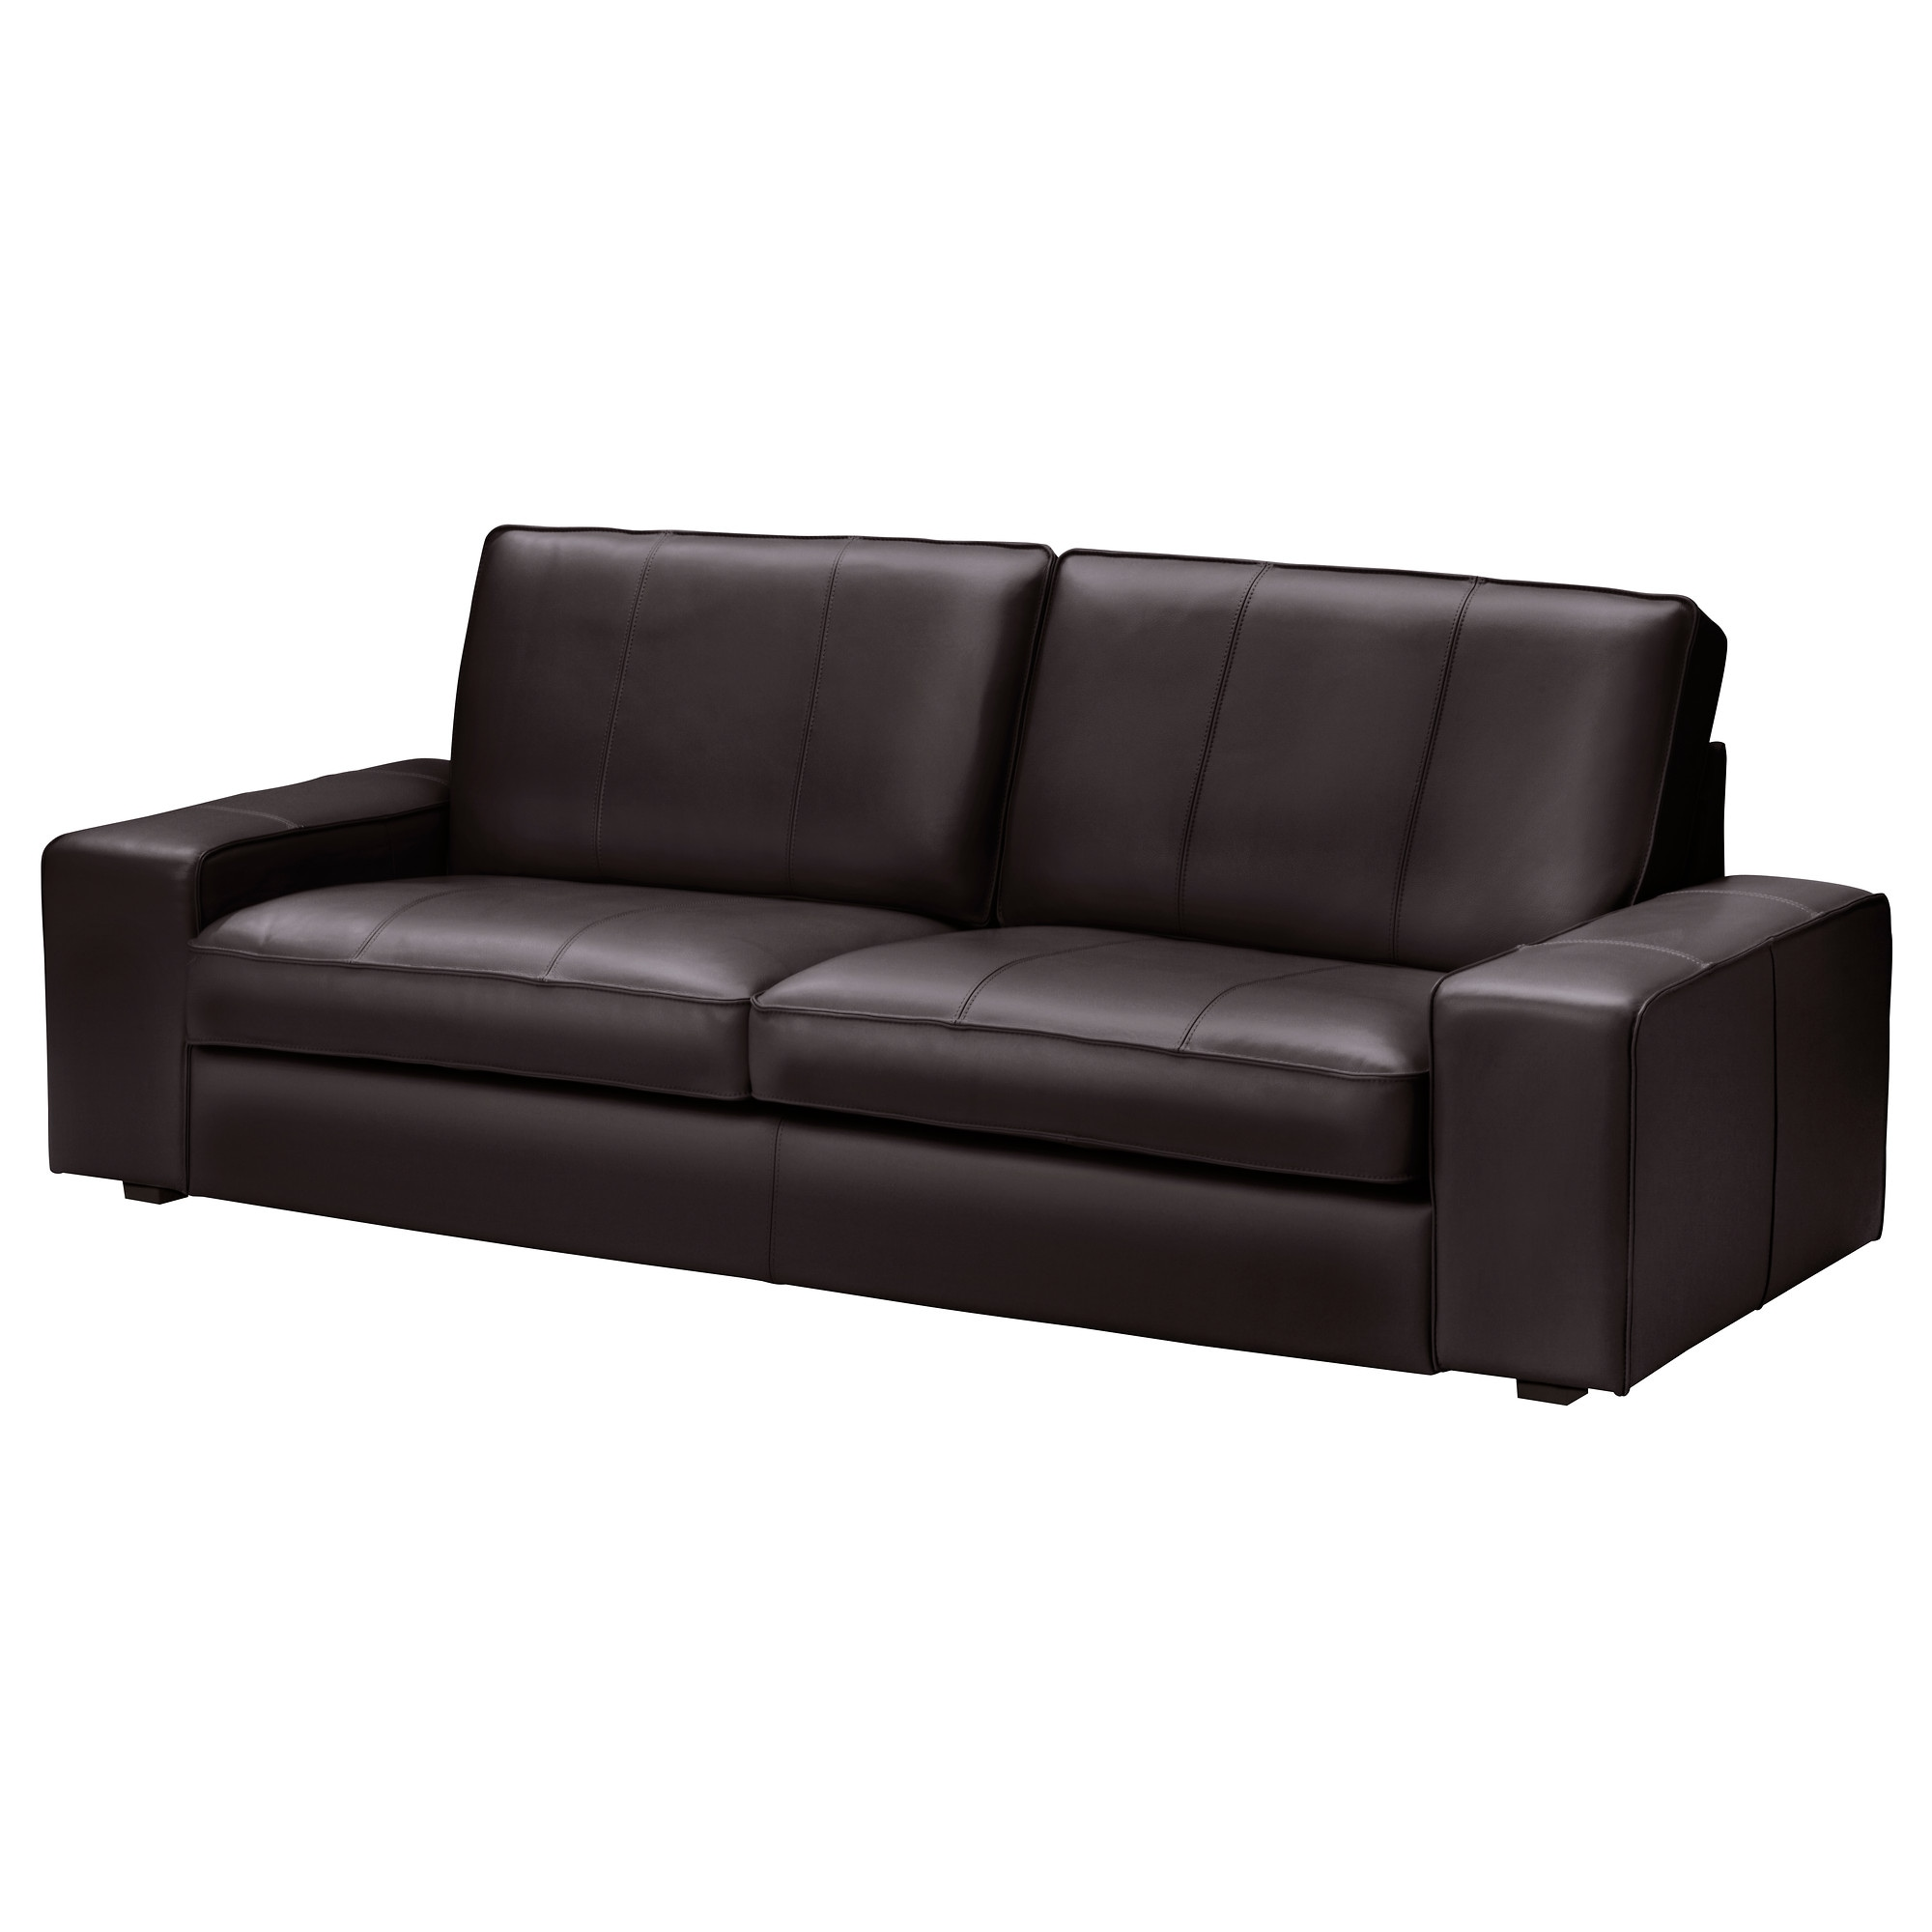 leather office couch. kivik sofa grann bomstad dark brown width 89 38 leather office couch